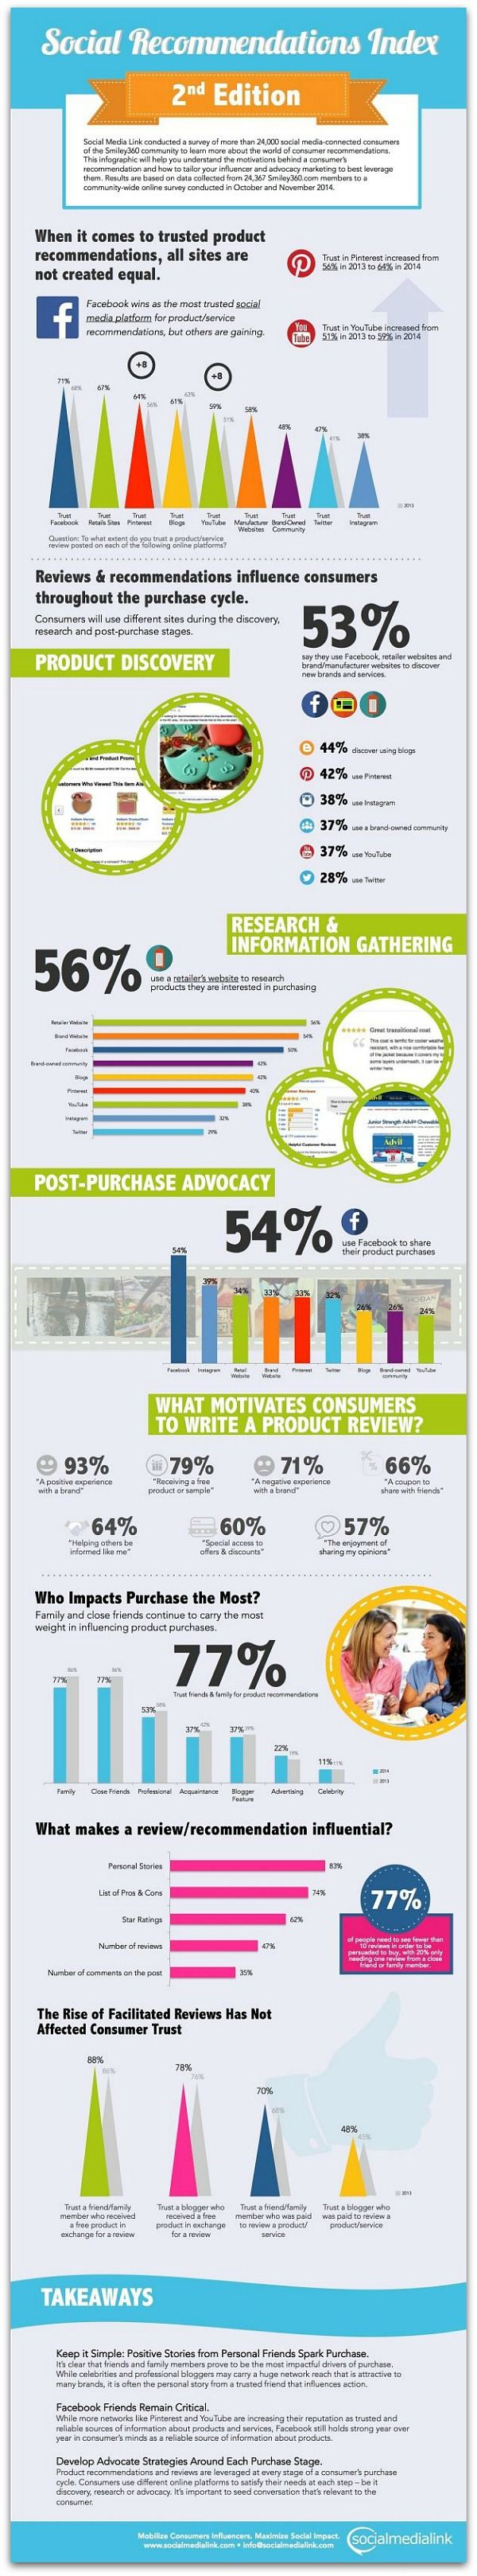 Infographic: What makes consumers endorse brands on social media   Articles   Main